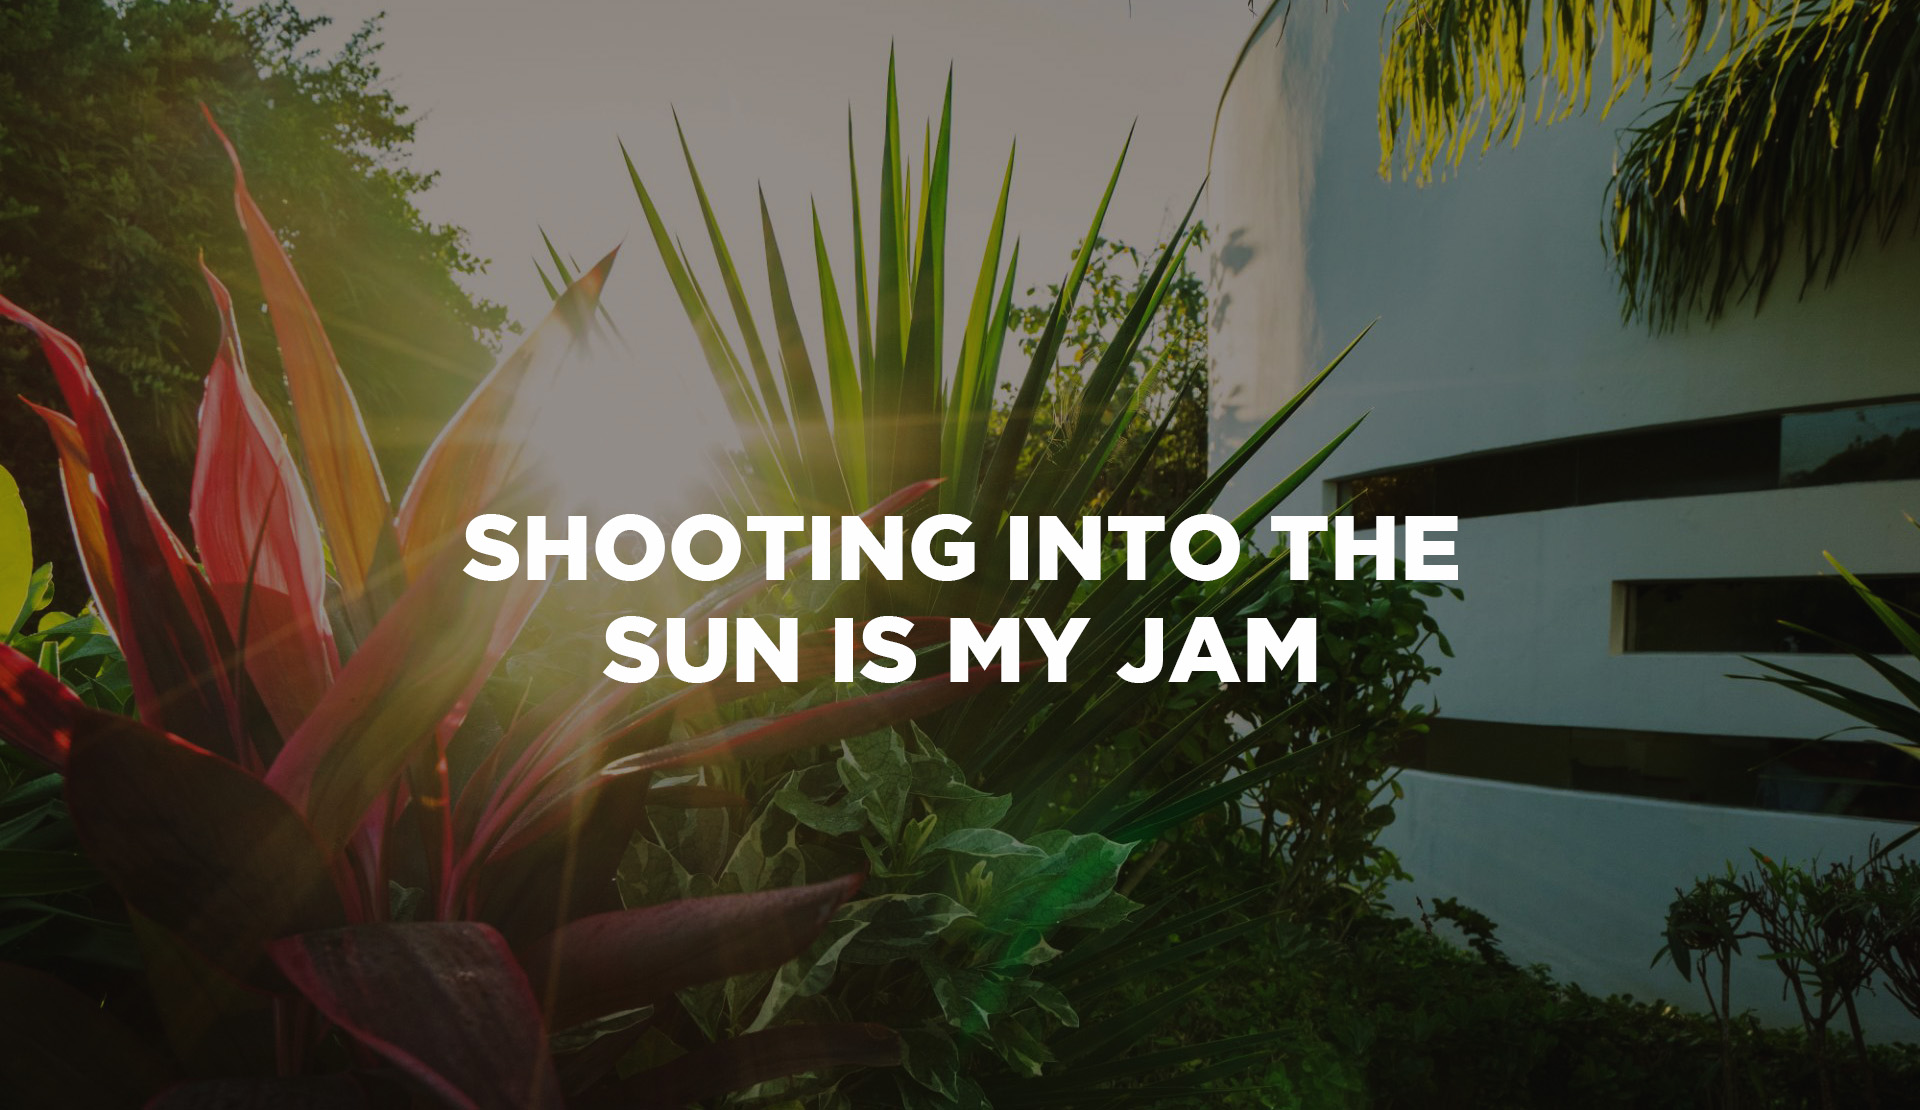 Shooting into the sun is my jam